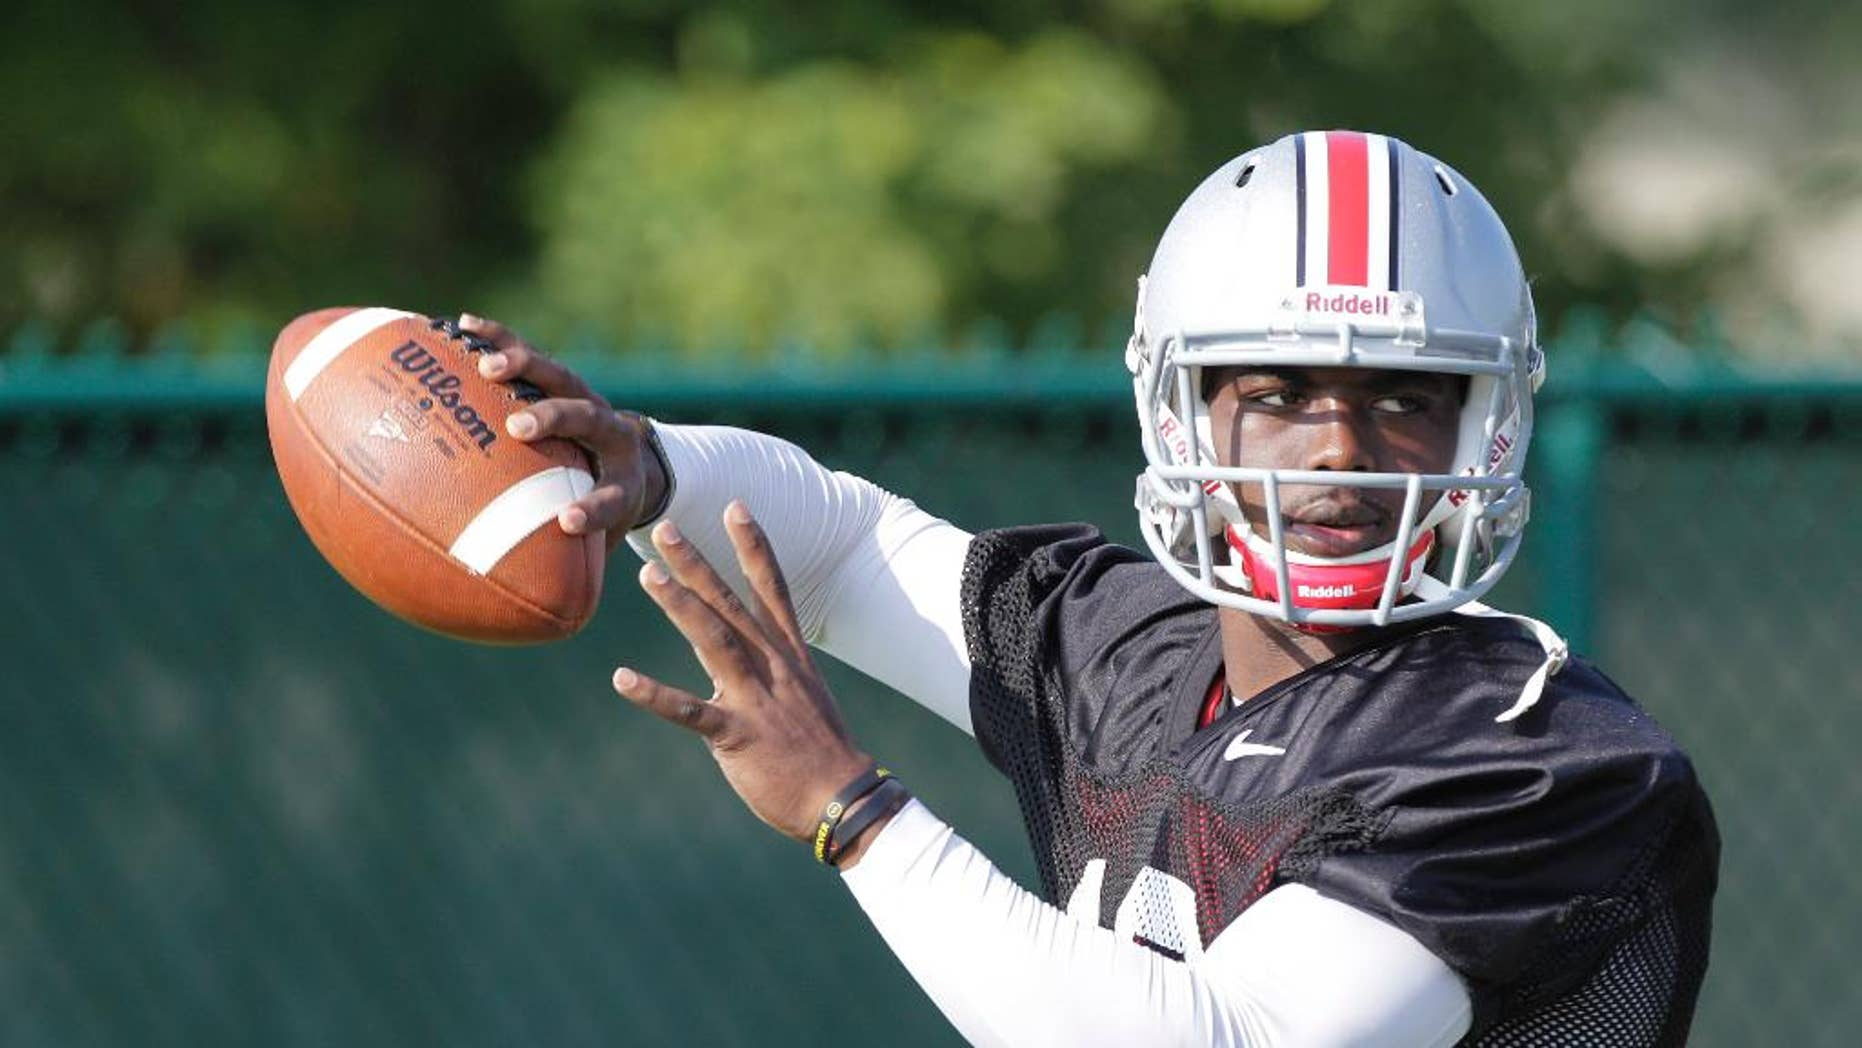 FILE - In this Aug. 9, 2014, file photo, Ohio State quarterback J.T. Barrett throws a pass during NCAA college football practice in Columbus, Ohio. His teammates and coaches say Barrett has taken over as No. 5 Ohio State's starting quarterback as if that were the plan all along. It wasn't, of course. Barrett, a freshman, got the job when two-time Big Ten player of the year Braxton Miller reinjured his throwing shoulder 10 days ago and was lost for the season. (AP Photo/Jay LaPrete, File)